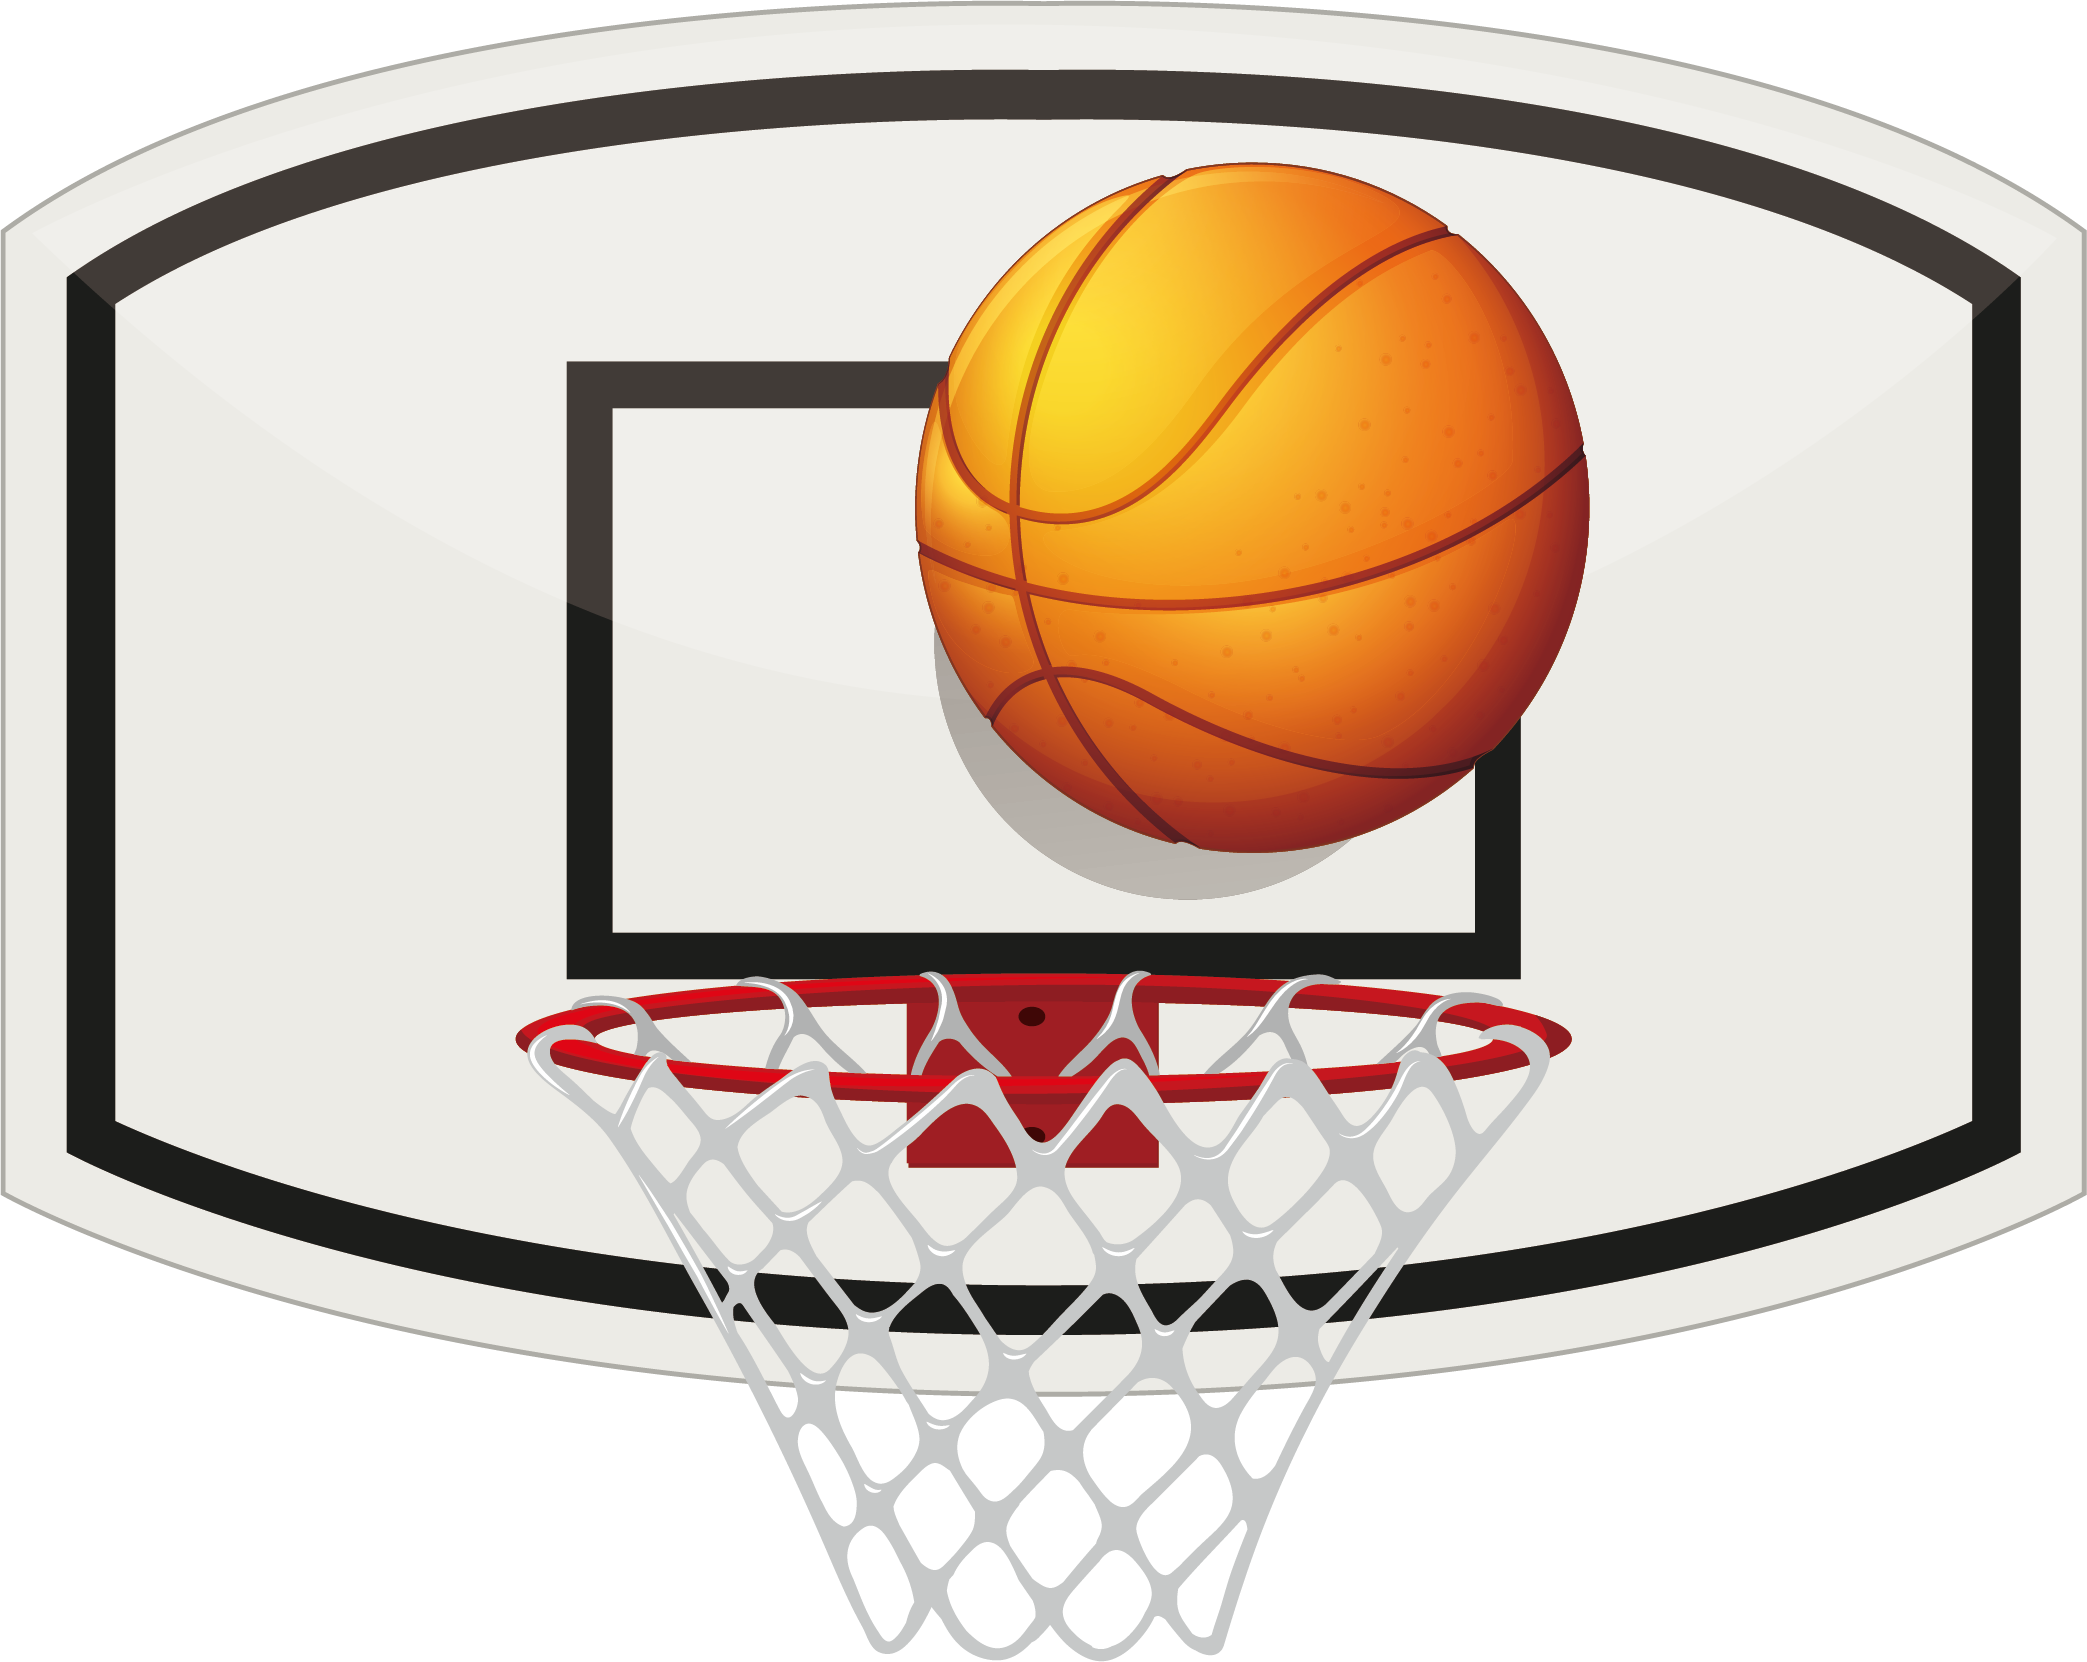 Basketball backboard breaking clipart graphic freeuse stock Basketball Backboard Stock photography - Basketball Basketball 2087 ... graphic freeuse stock